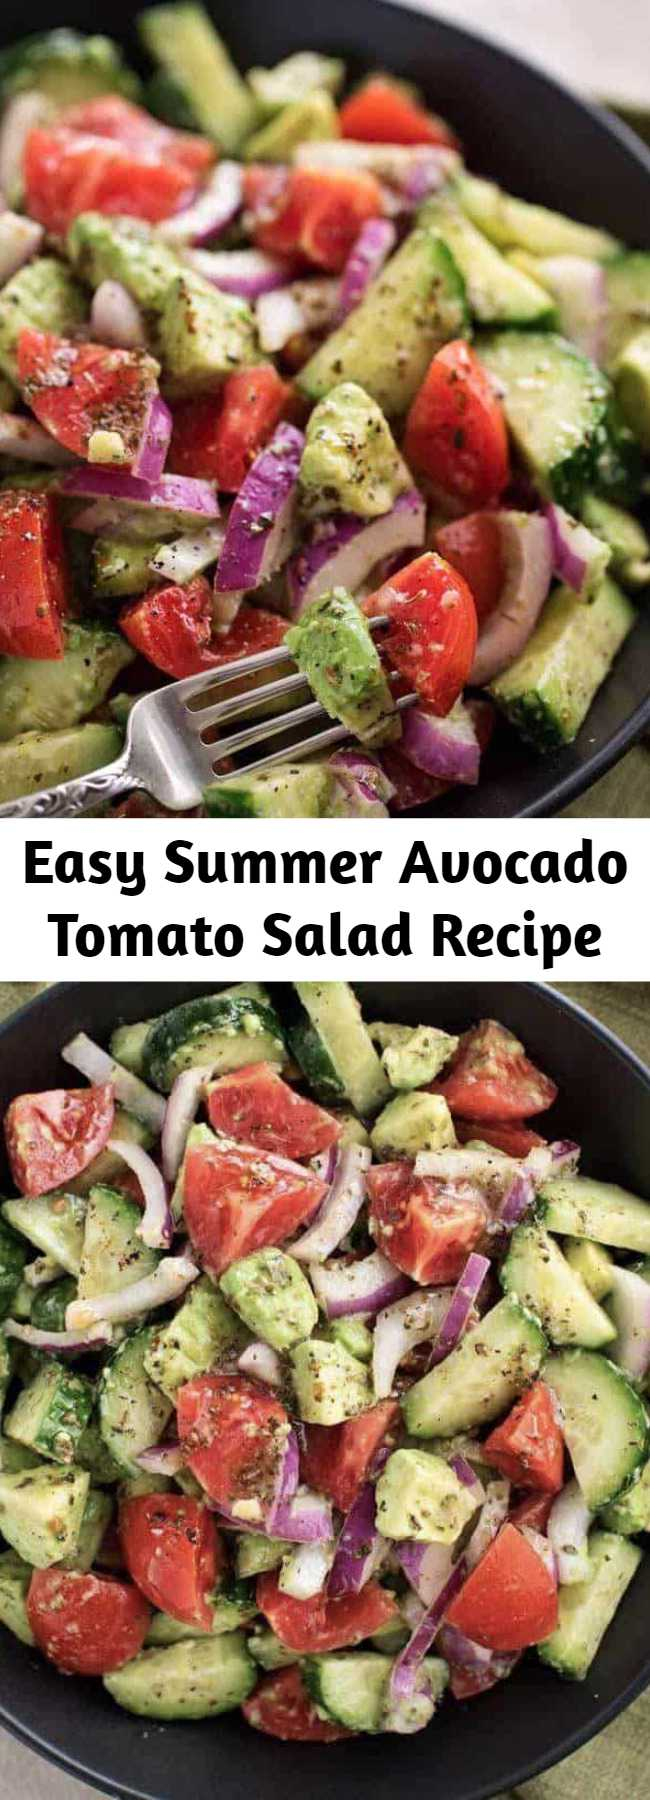 Easy Summer Avocado Tomato Salad Recipe - This fresh and delicious Avocado Tomato salad recipe is made with cucumbers, tomatoes, and avocados mixed in with a unique and flavorful dressing. So refreshing, perfect for the summer and pairs well with any meal as a side dish or enjoy on its own!